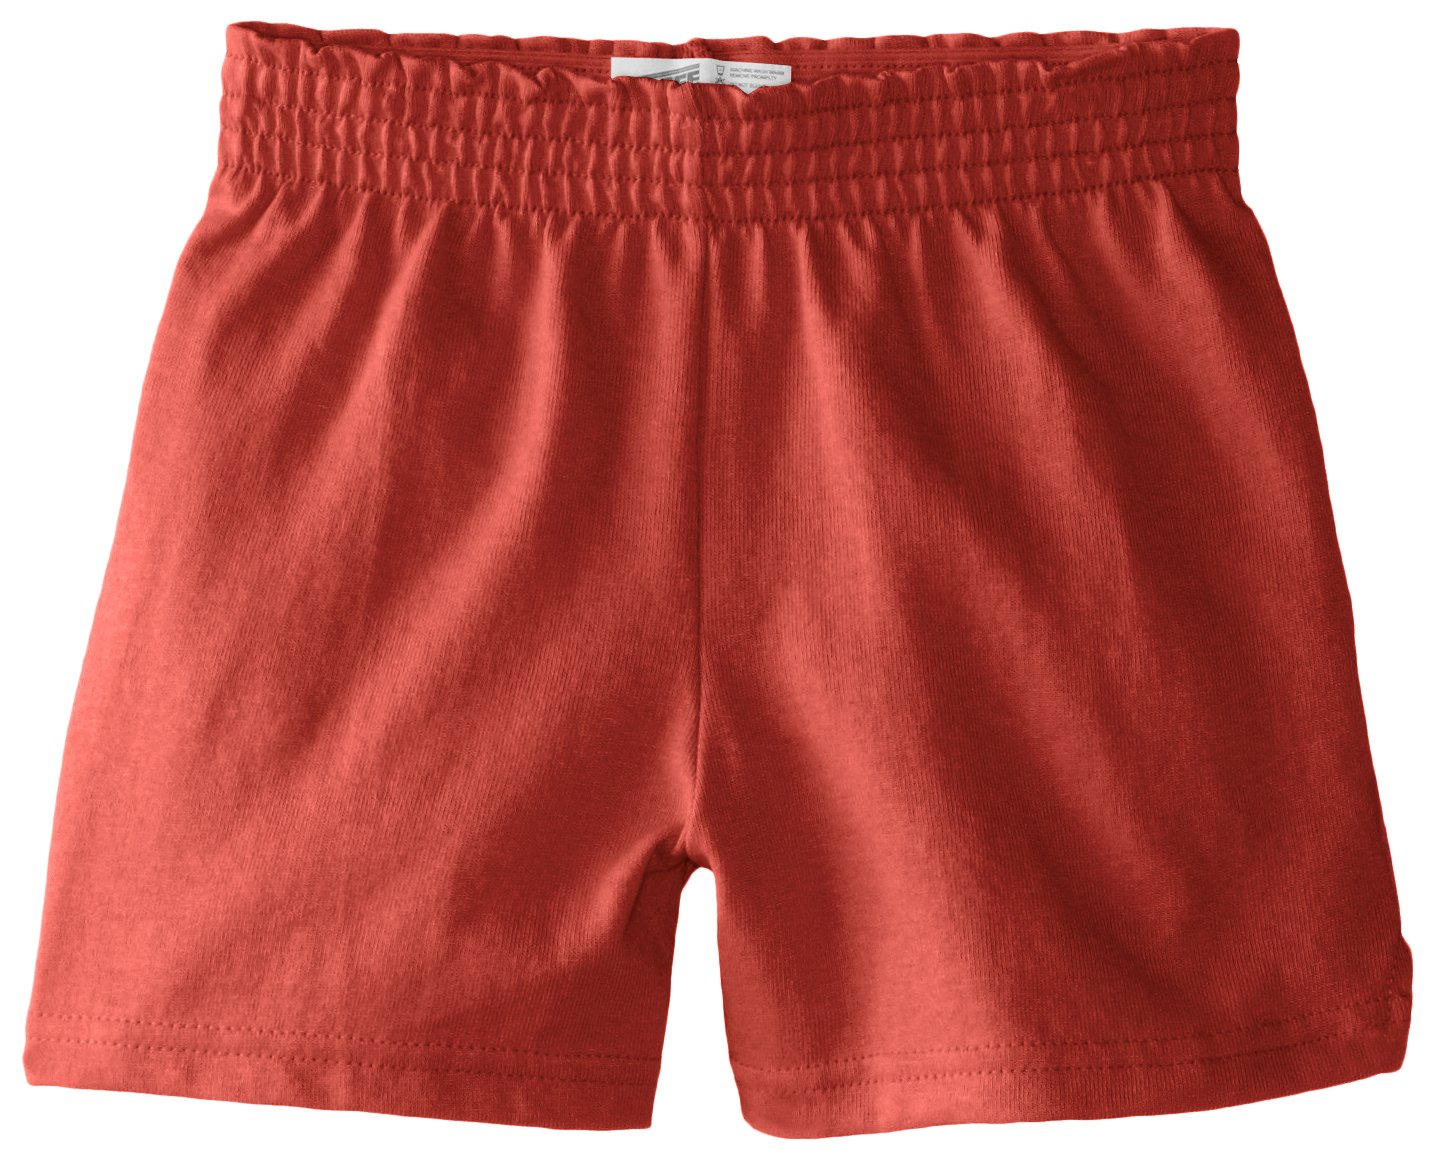 Soffe Big Girls' New Soffe Short Soffe Girls 7-16 3737G